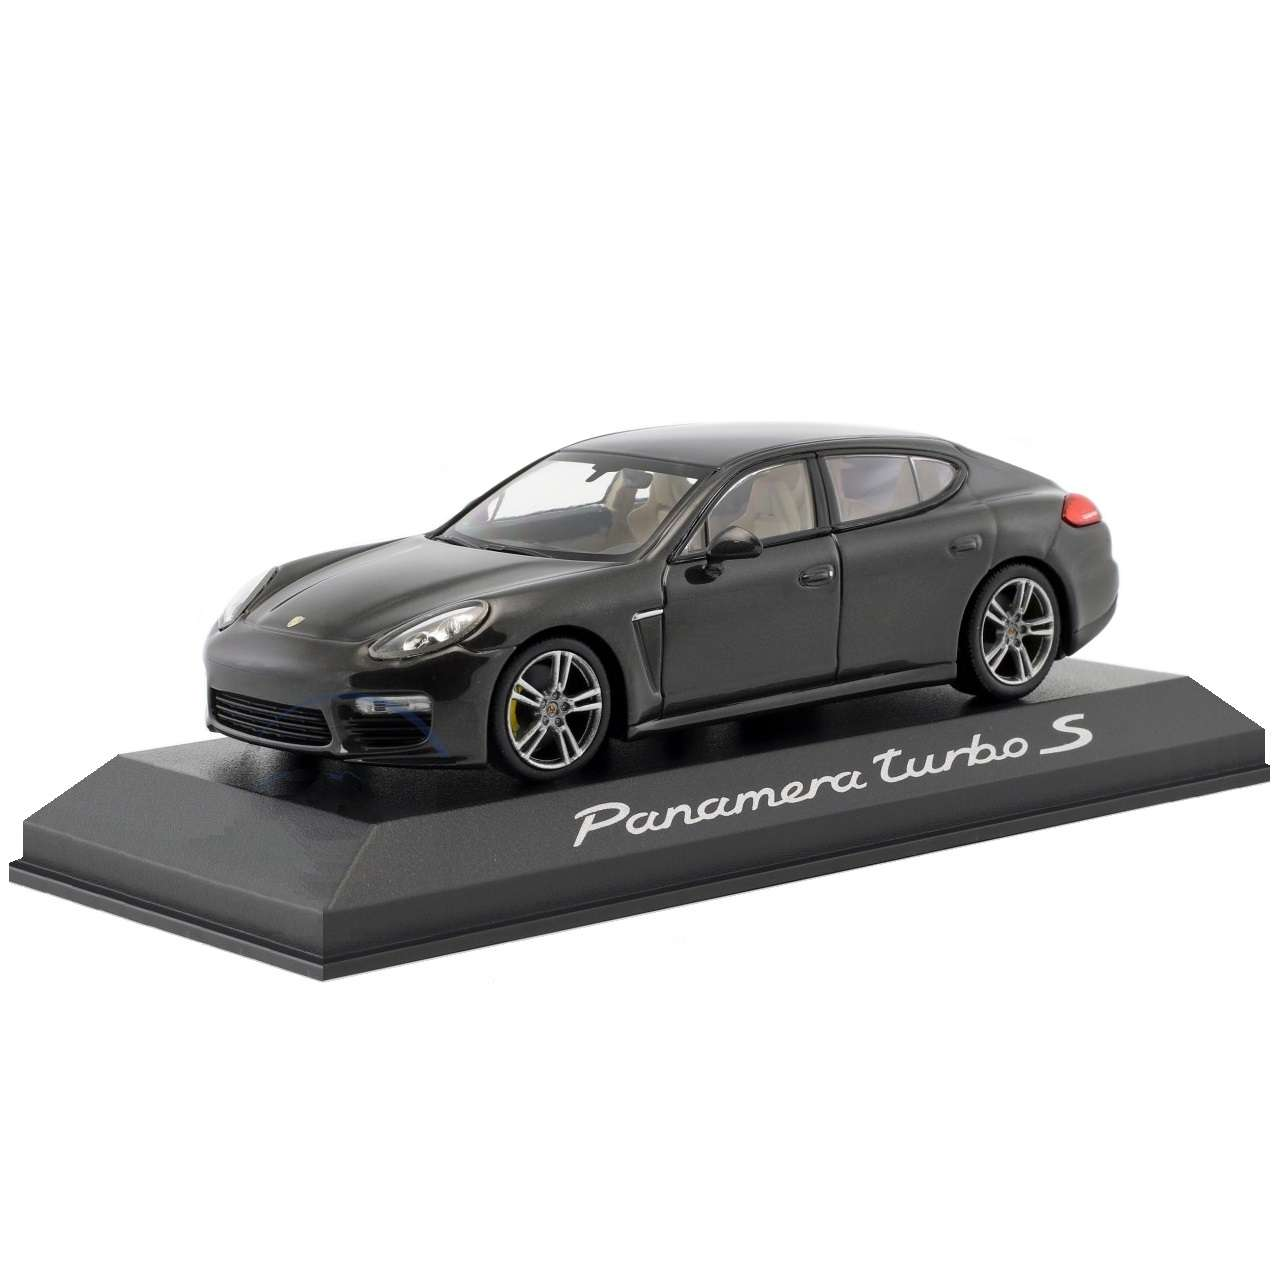 Diecast Car 1/43: Street Cars - Porsche Panamera Turbo Gen. II, 2014 Photo